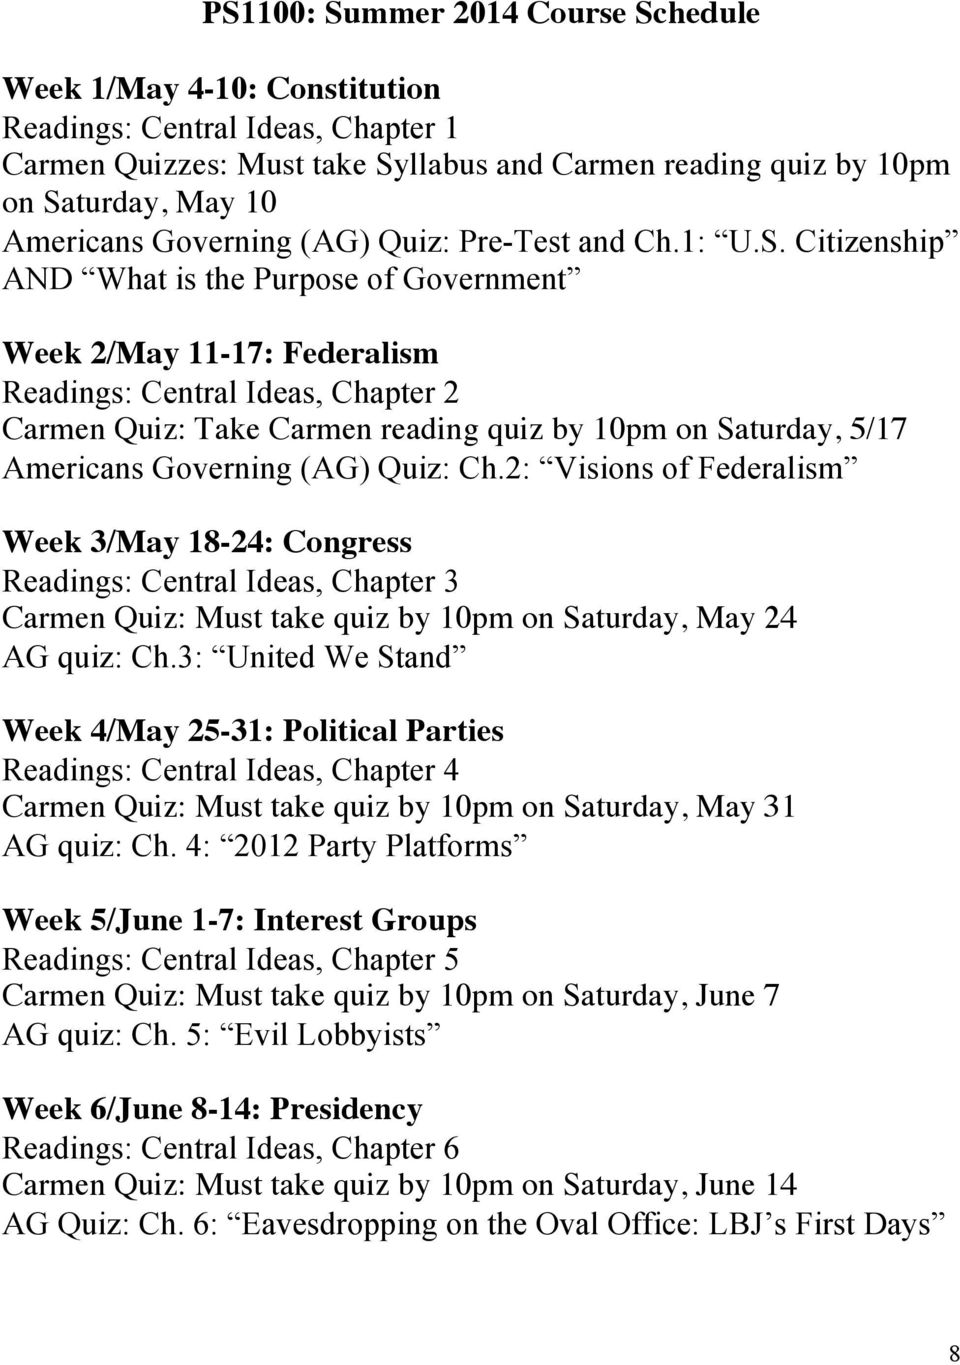 Citizenship AND What is the Purpose of Government Week 2/May 11-17: Federalism Readings: Central Ideas, Chapter 2 Carmen Quiz: Take Carmen reading quiz by 10pm on Saturday, 5/17 Americans Governing